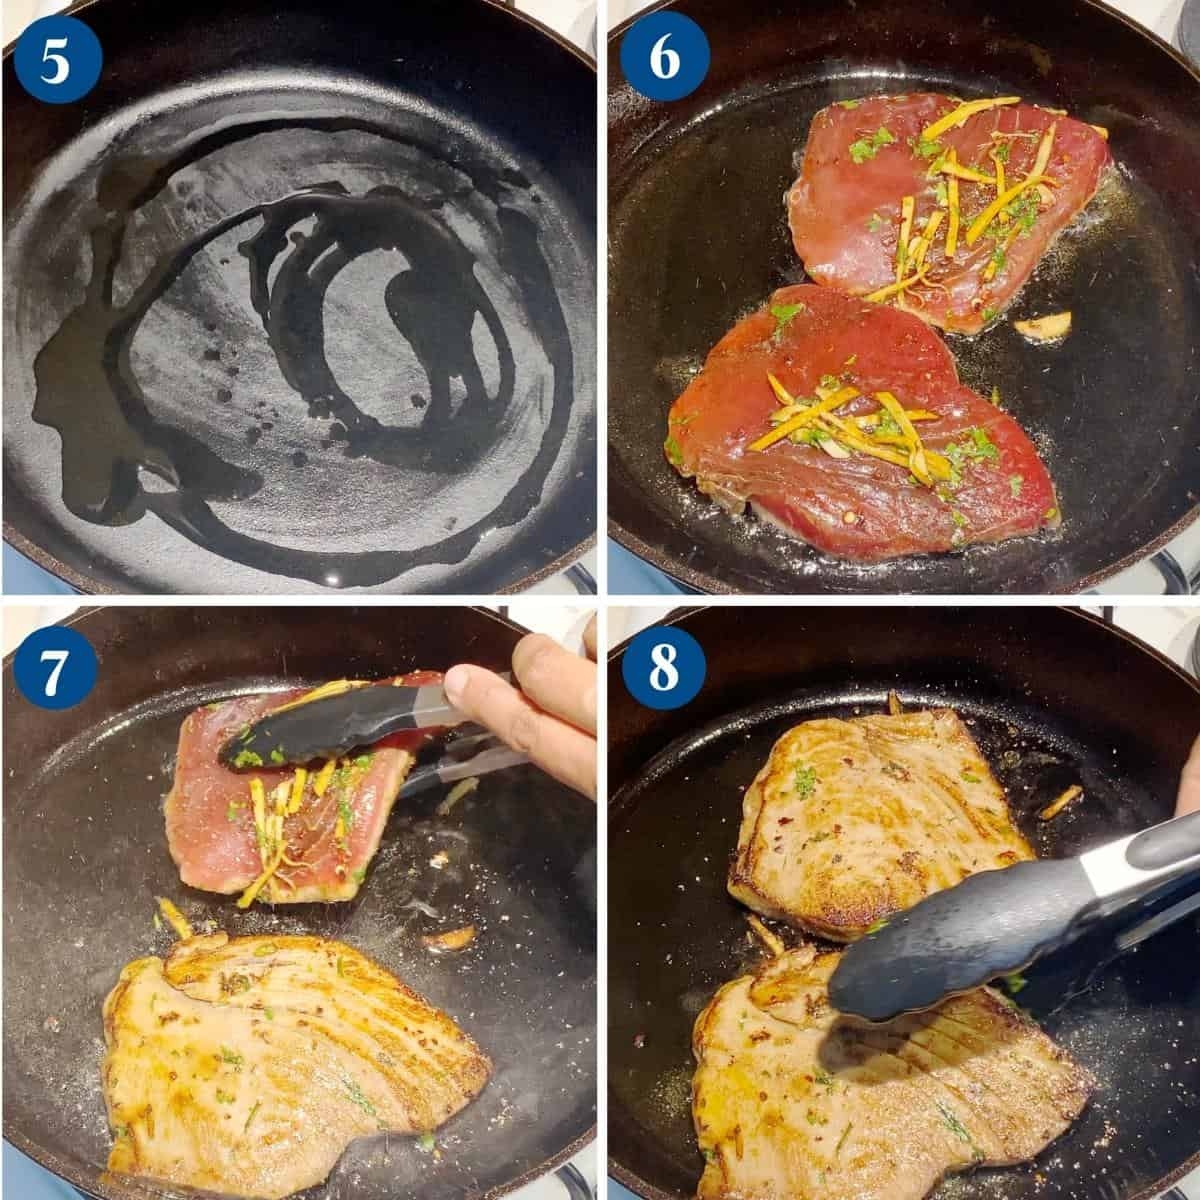 Progress pictures collage searing the tuna steak.